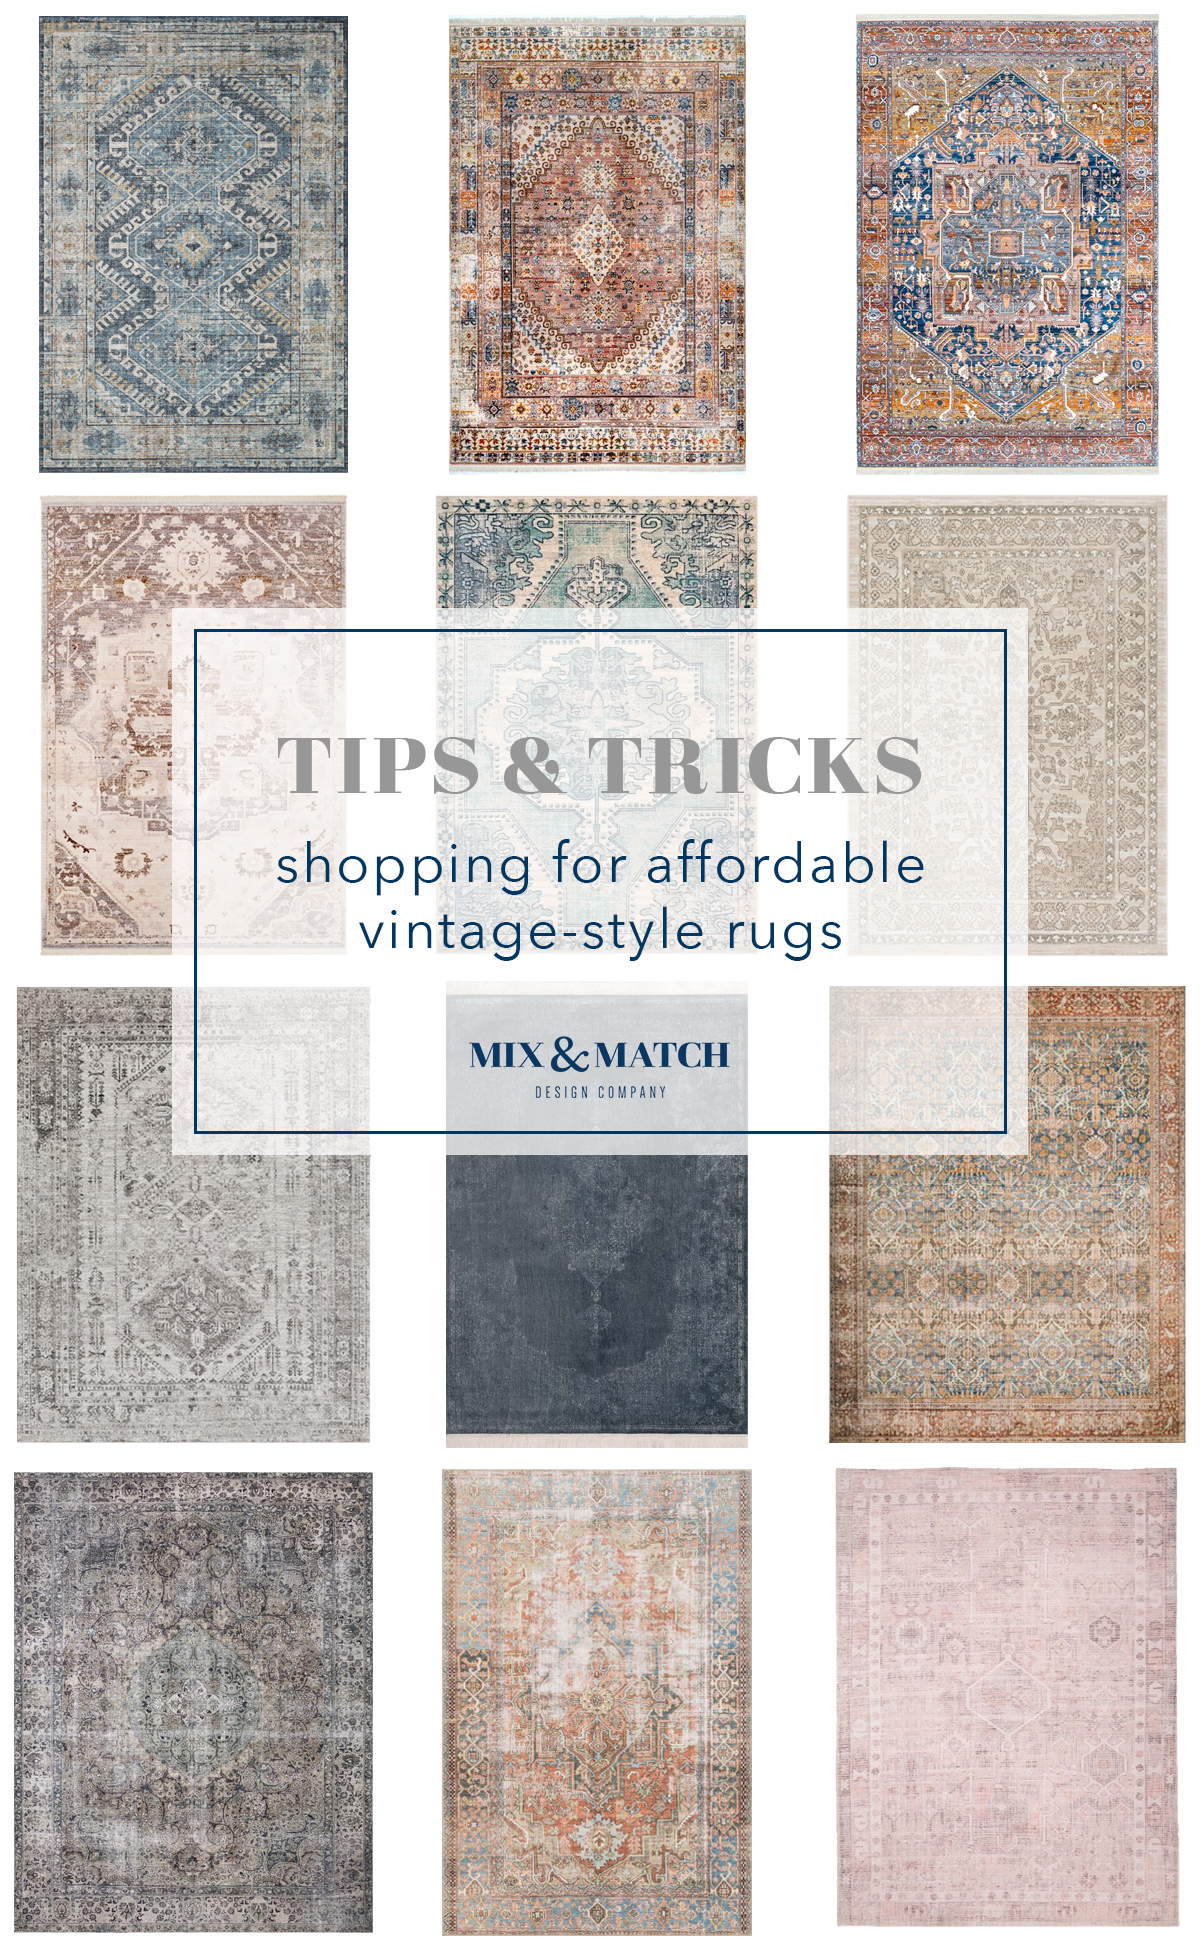 Find tips for shopping affordable vintage-style rugs and get the sources for these!